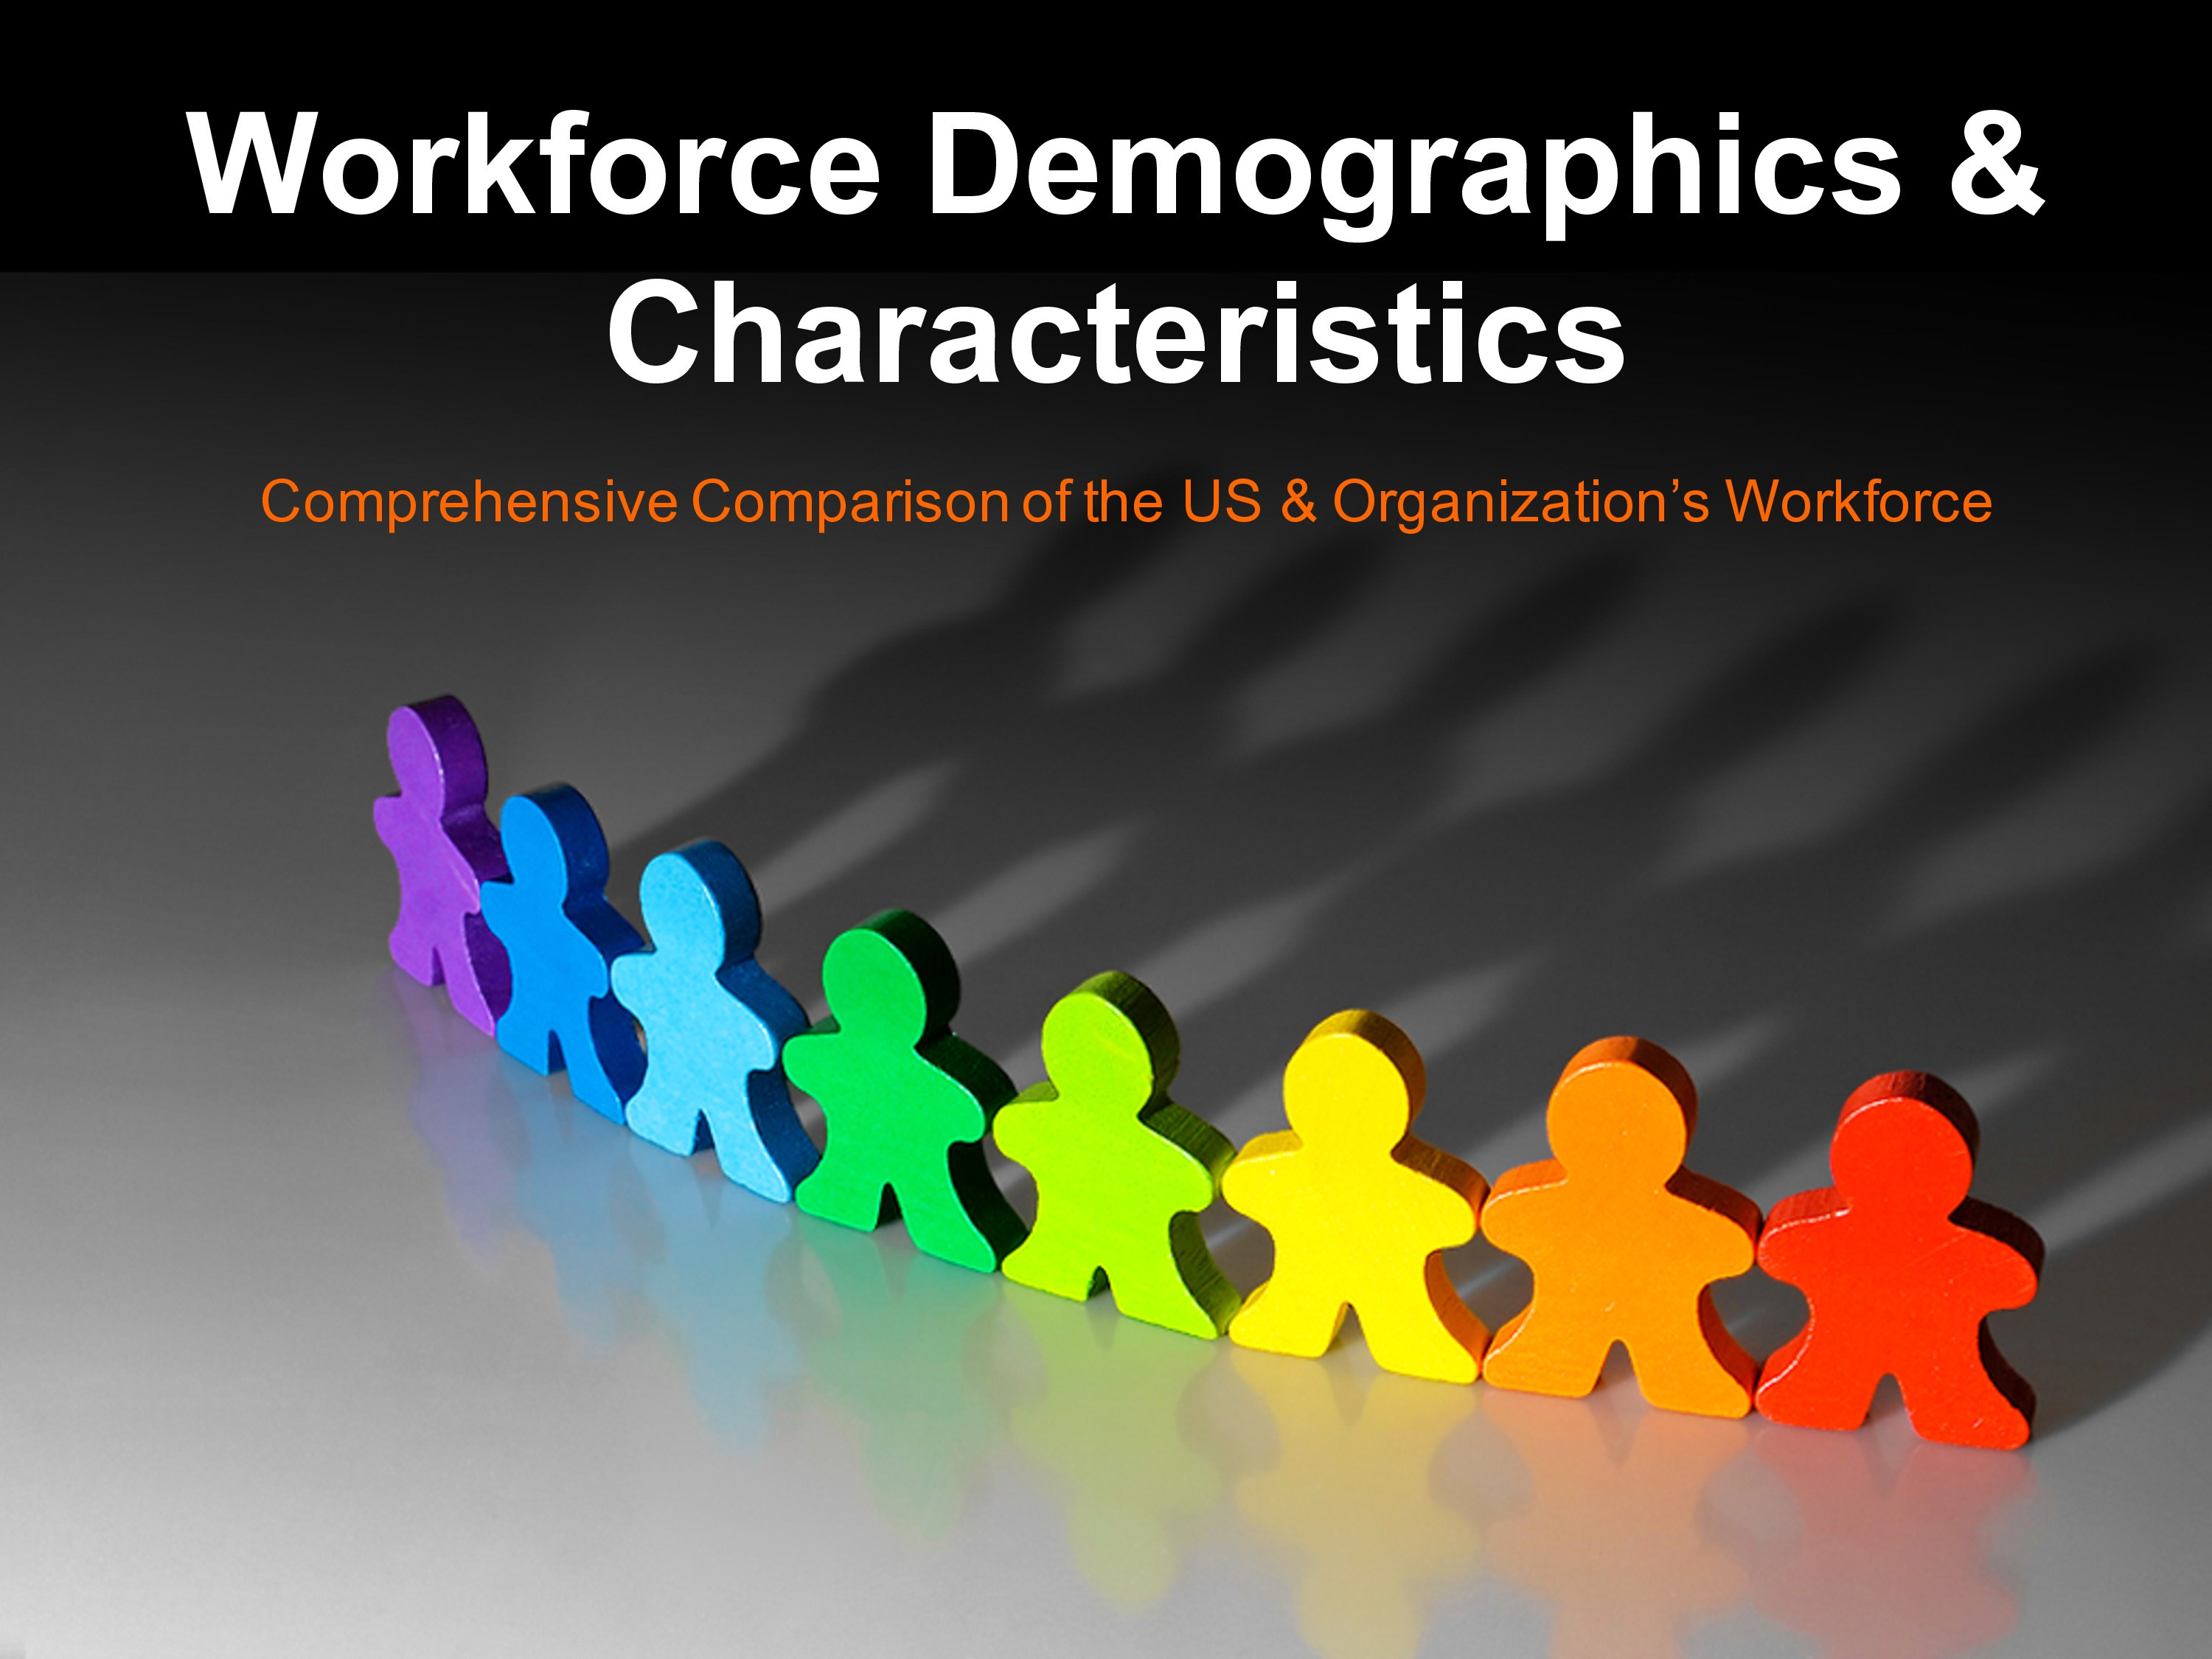 Workforce Demographics & Characteristics